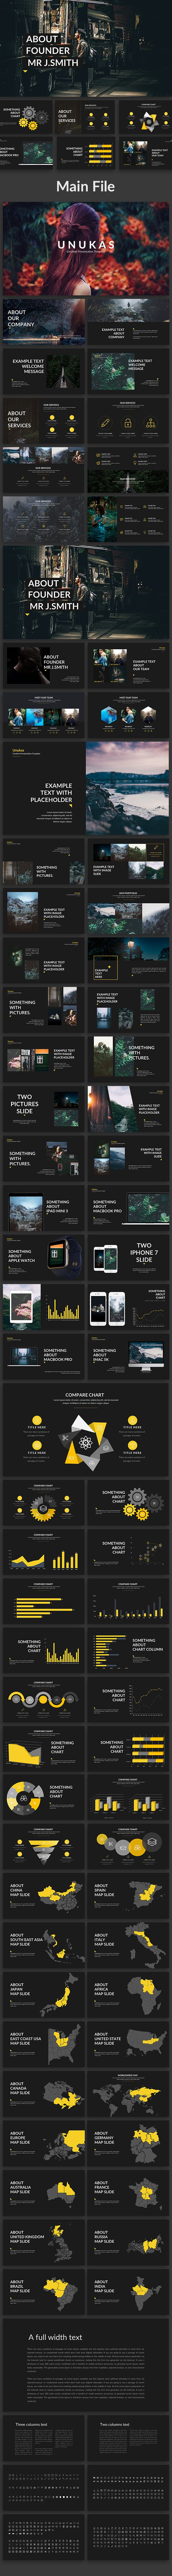 Unukas  Creative Powerpoint Template #data charts #pitch deck • Download ➝ https://graphicriver.net/item/unukas-creative-powerpoint-template/19495937?ref=pxcr